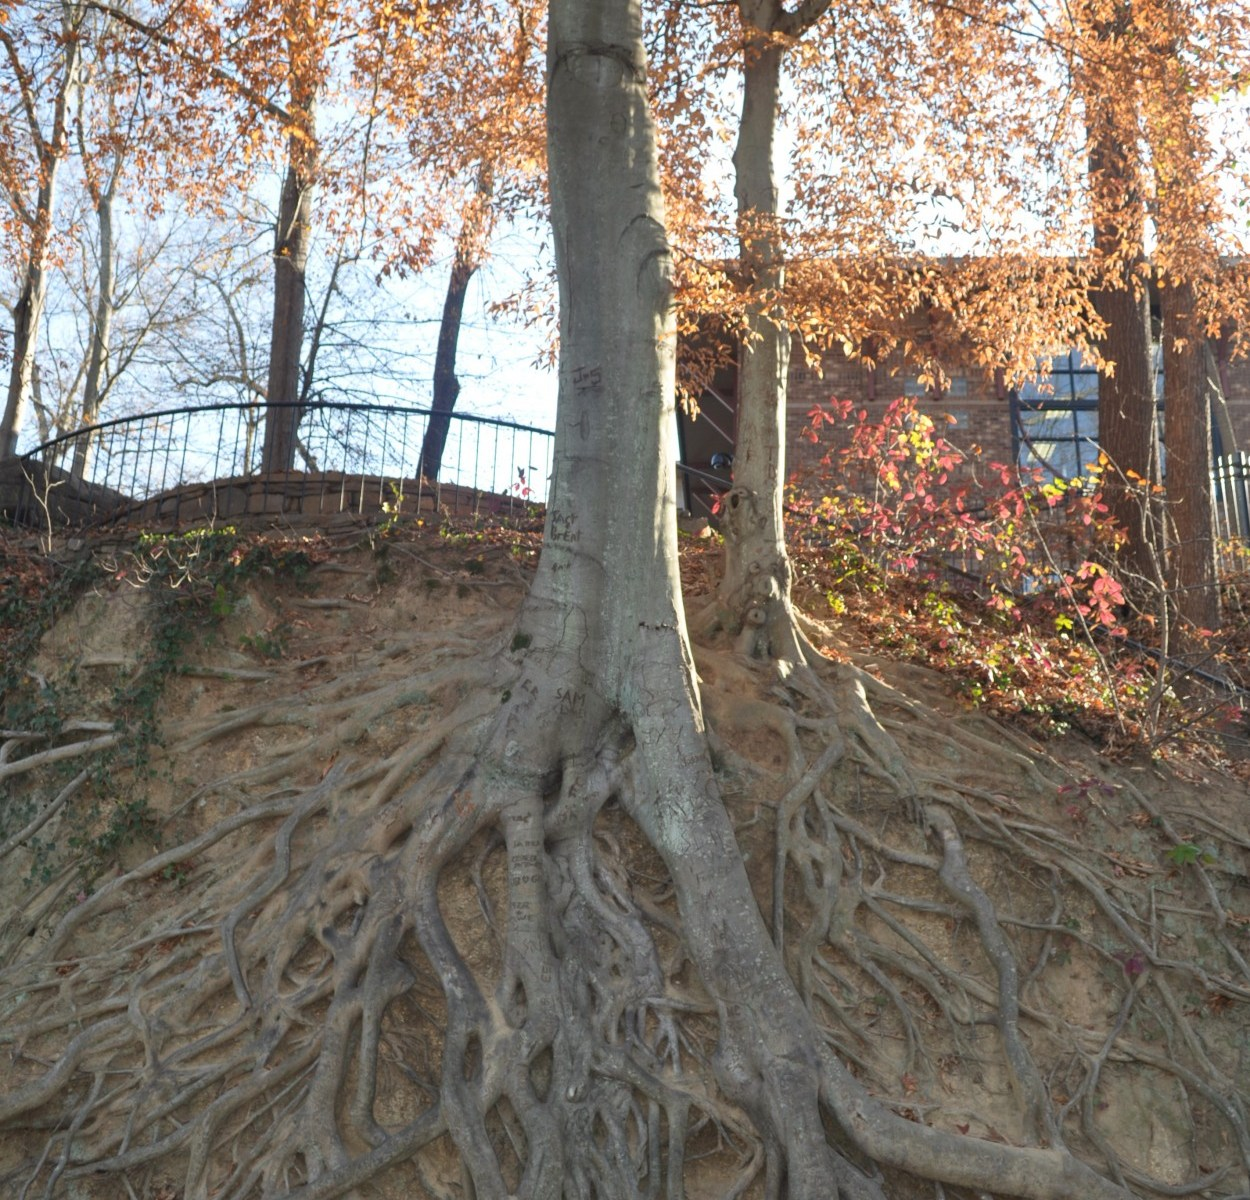 Tree roots growing above ground on side of hill